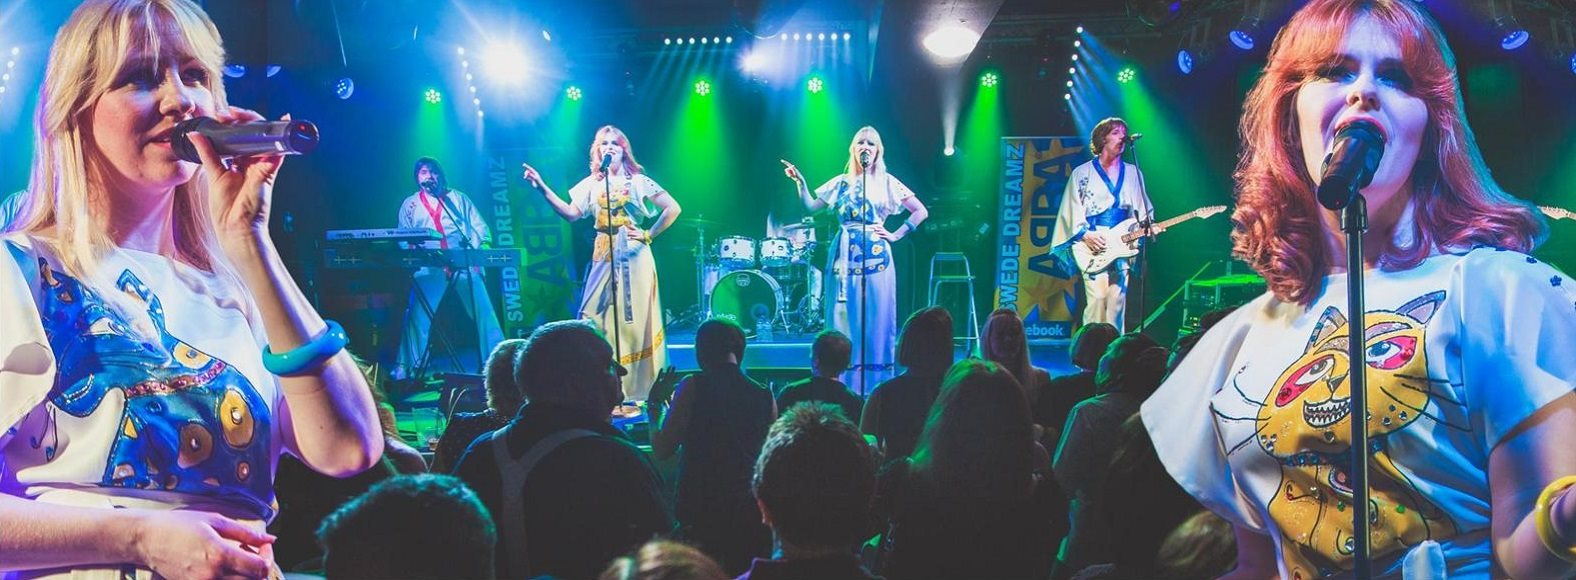 Swede Dreamz - ABBA Tribute Band - LEADING UK ABBA TRIBUTE ACT